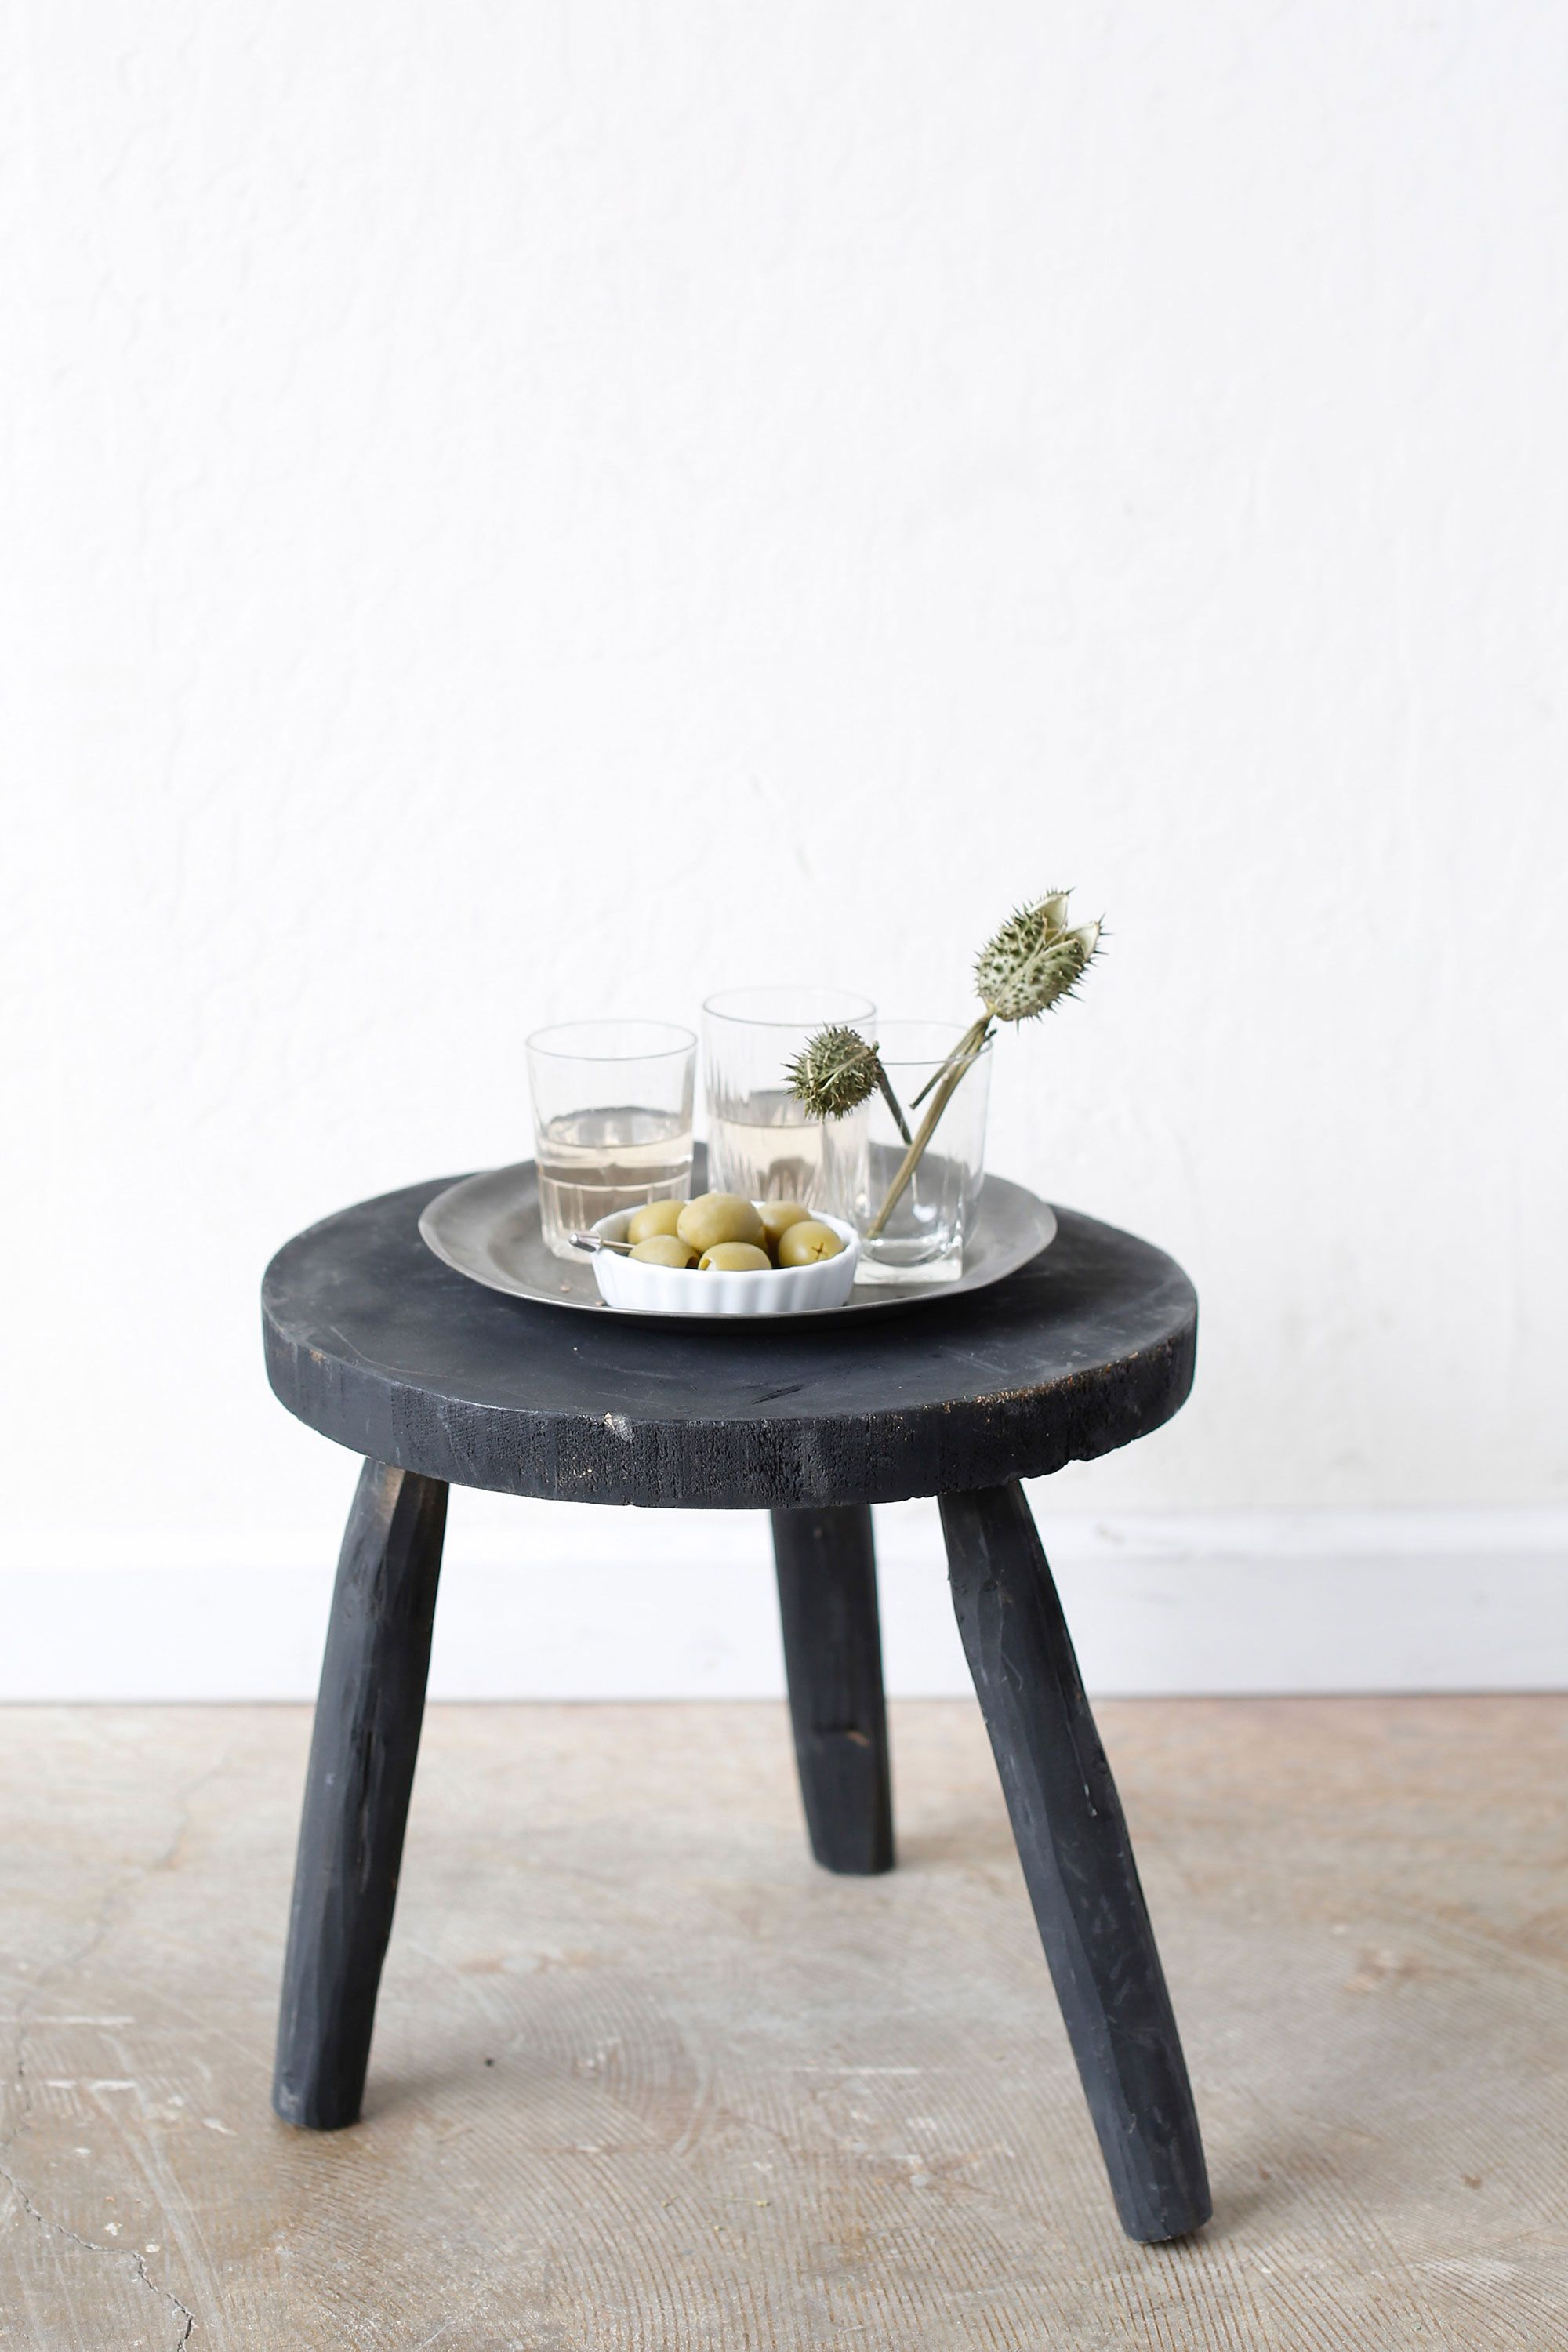 Fabulous Round Black Stool Vintage Finds For A Modern World Black Andrewgaddart Wooden Chair Designs For Living Room Andrewgaddartcom